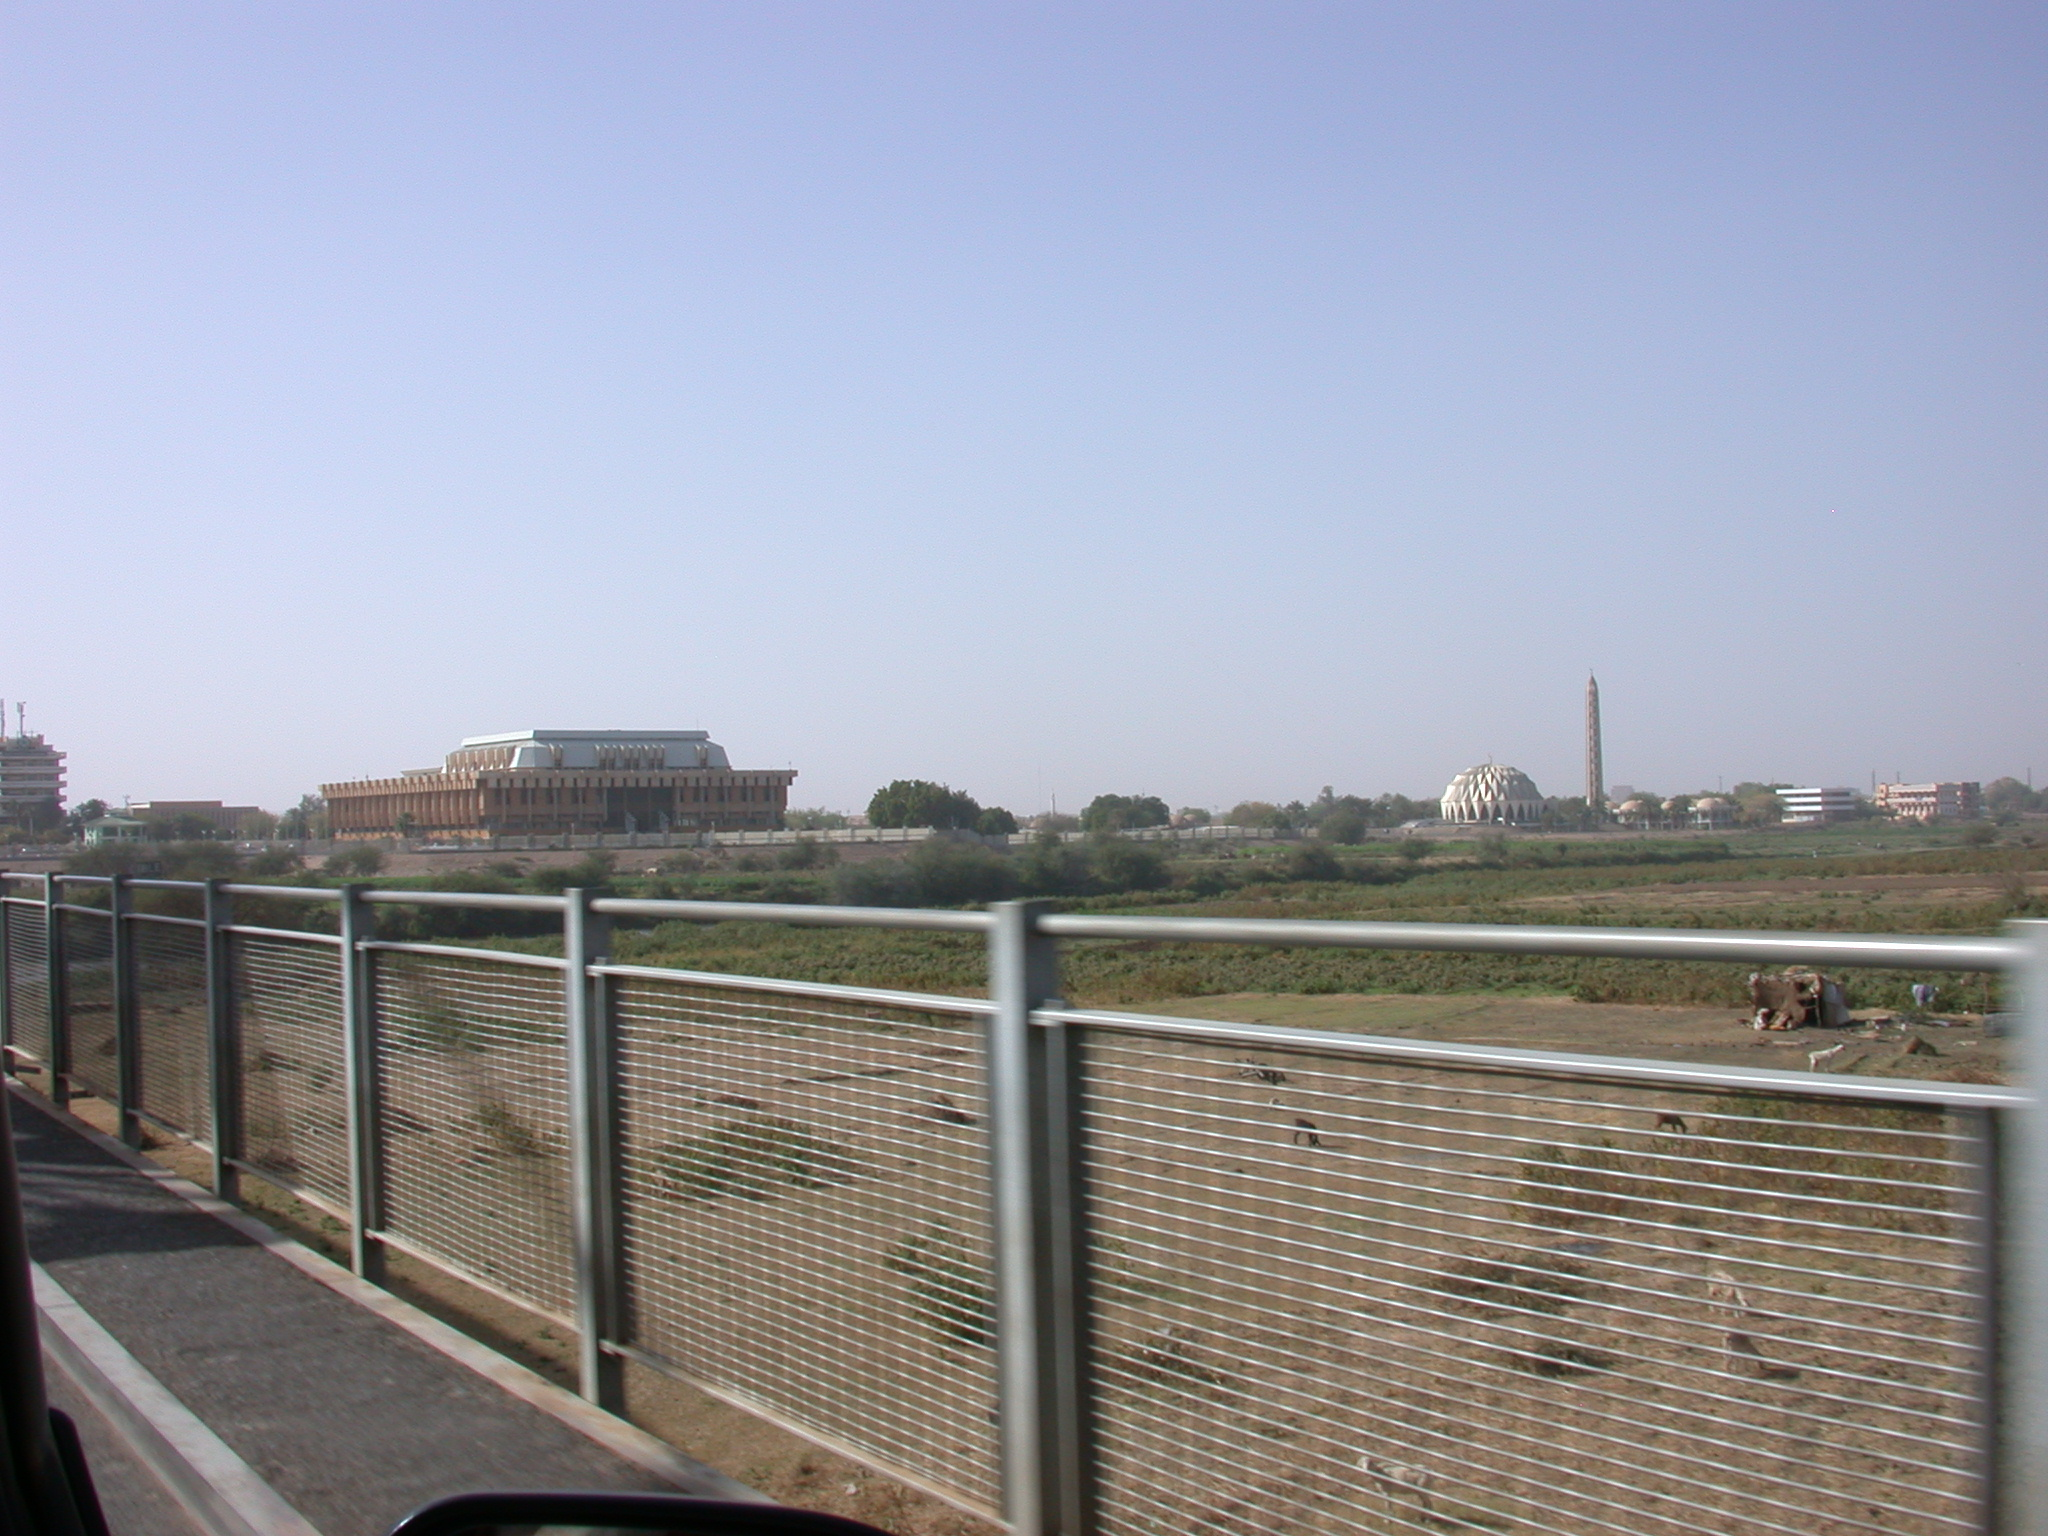 Sudan Parliament, Banks of Nile, Omdurman, Sudan